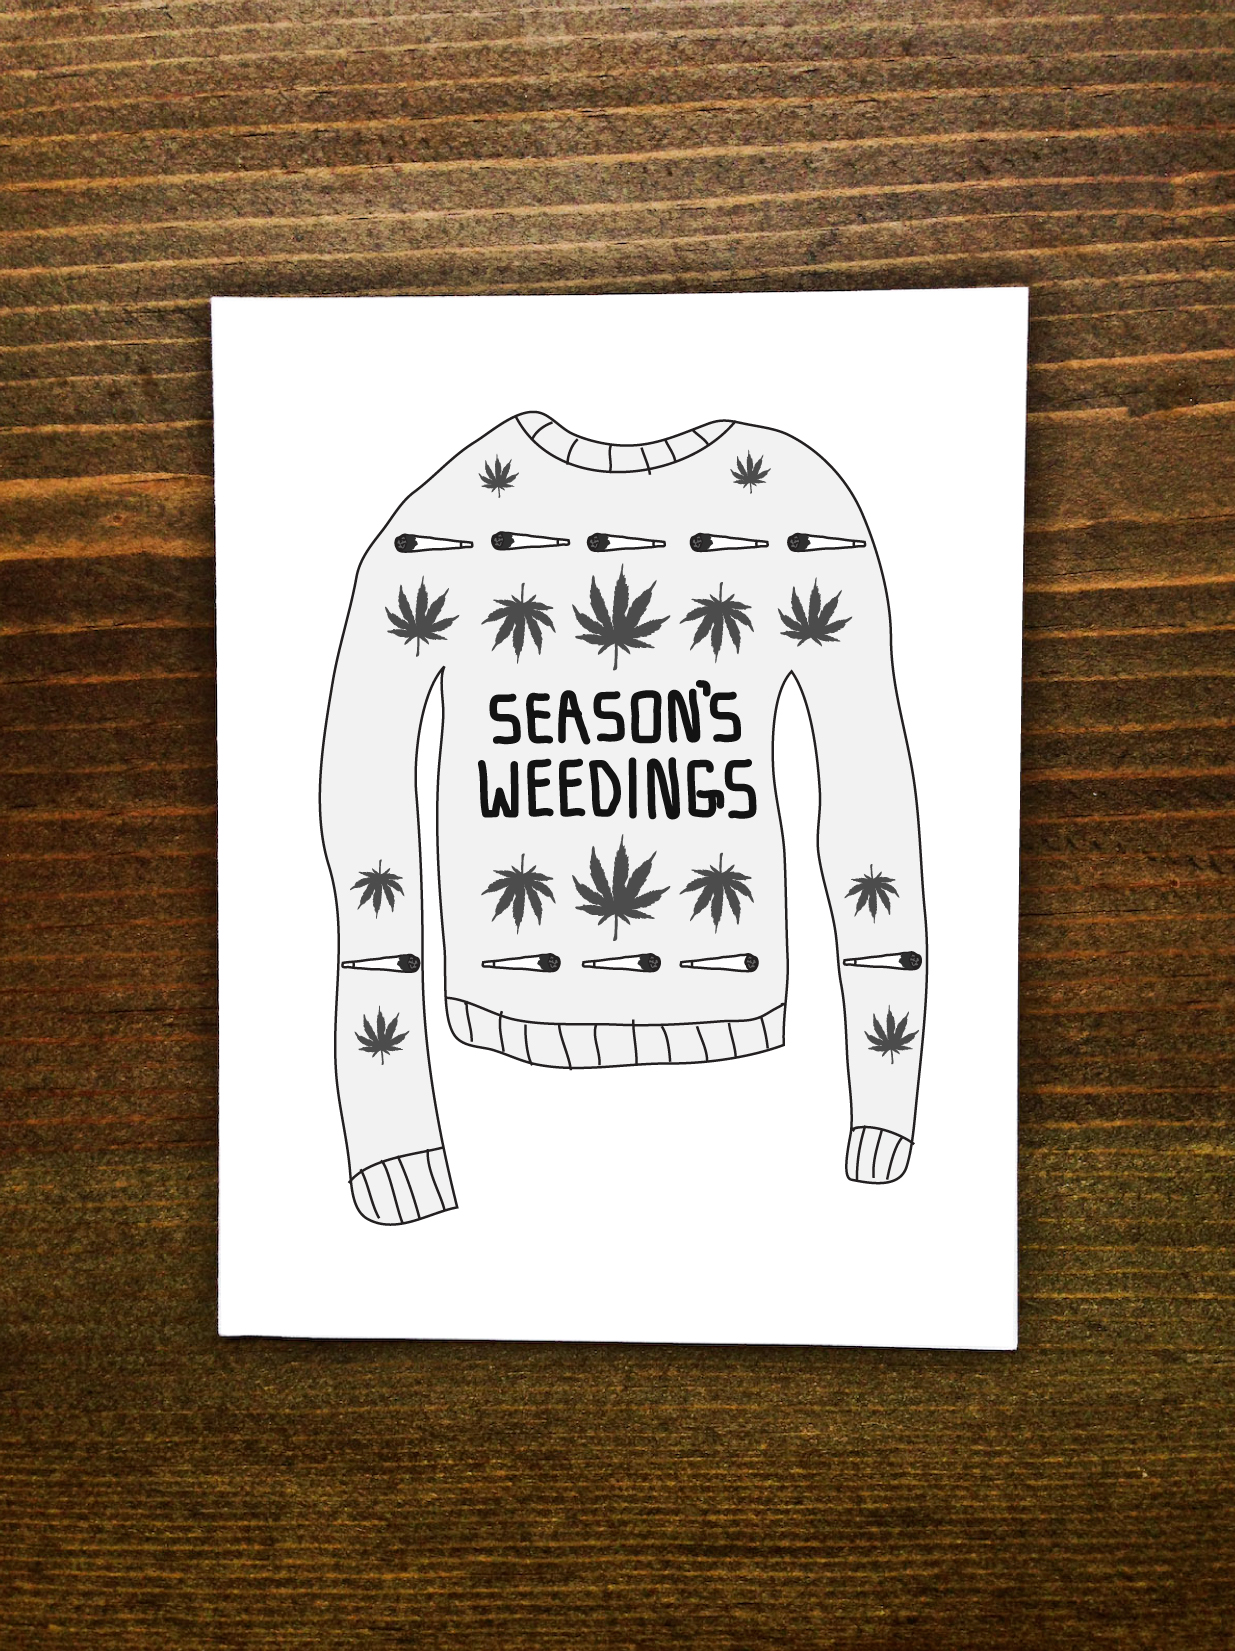 mrb122-seasons-weedings.jpg